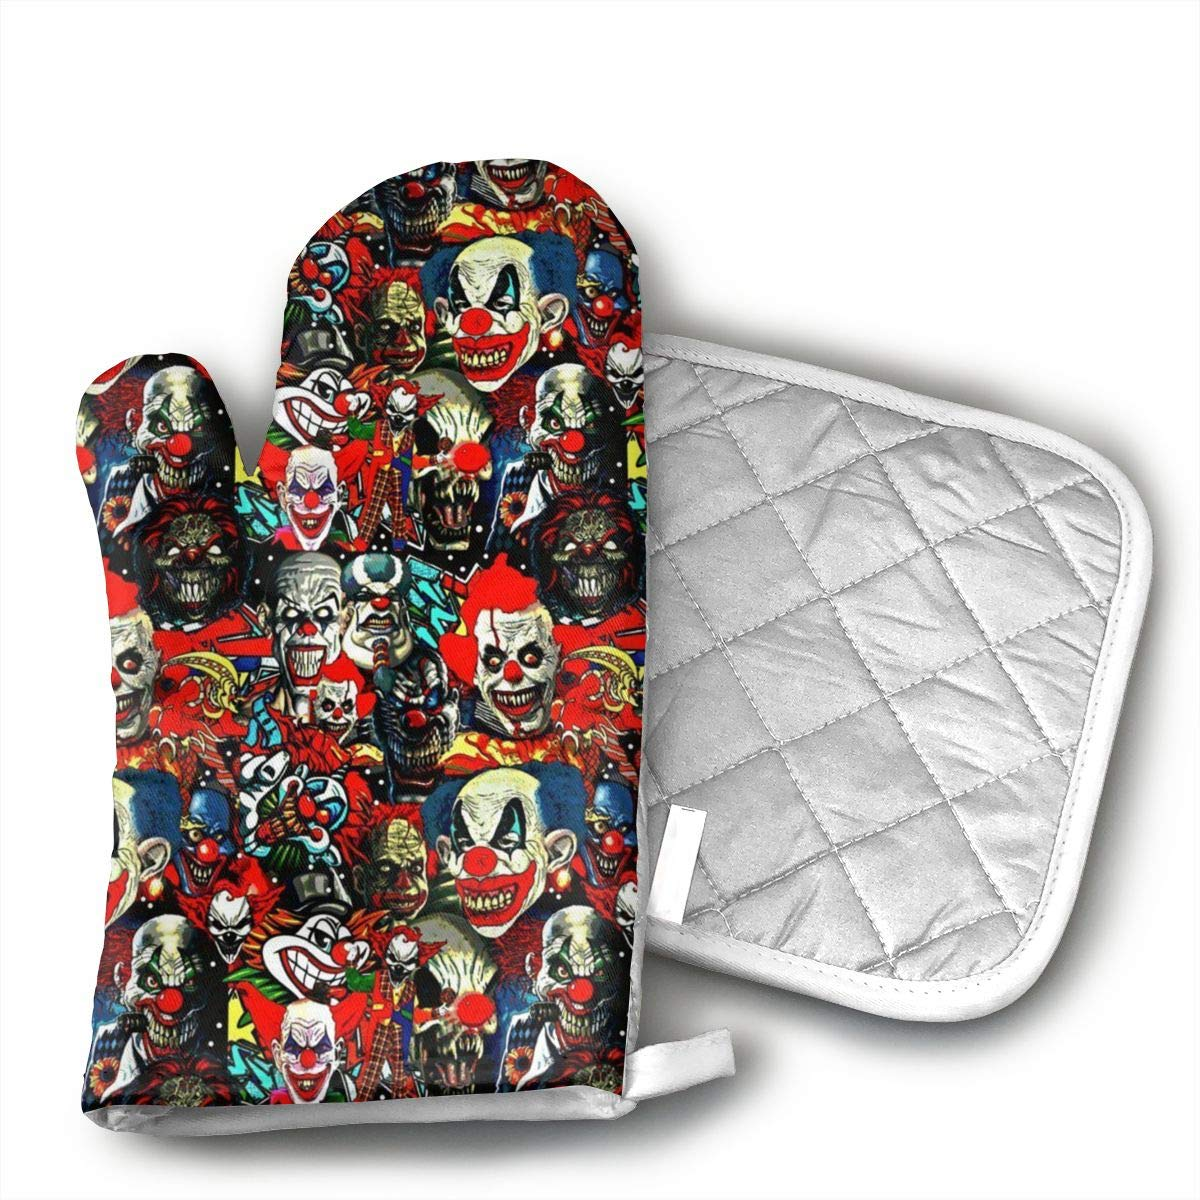 ujd Clowns The Bad Boys Neoprene Oven Mitts and Potholder Set-Heat Resistant Oven Gloves to Protect Hands and Surfaces with Non-Slip Grip, Hanging Loop-Ideal for Handling Hot Cookware Items